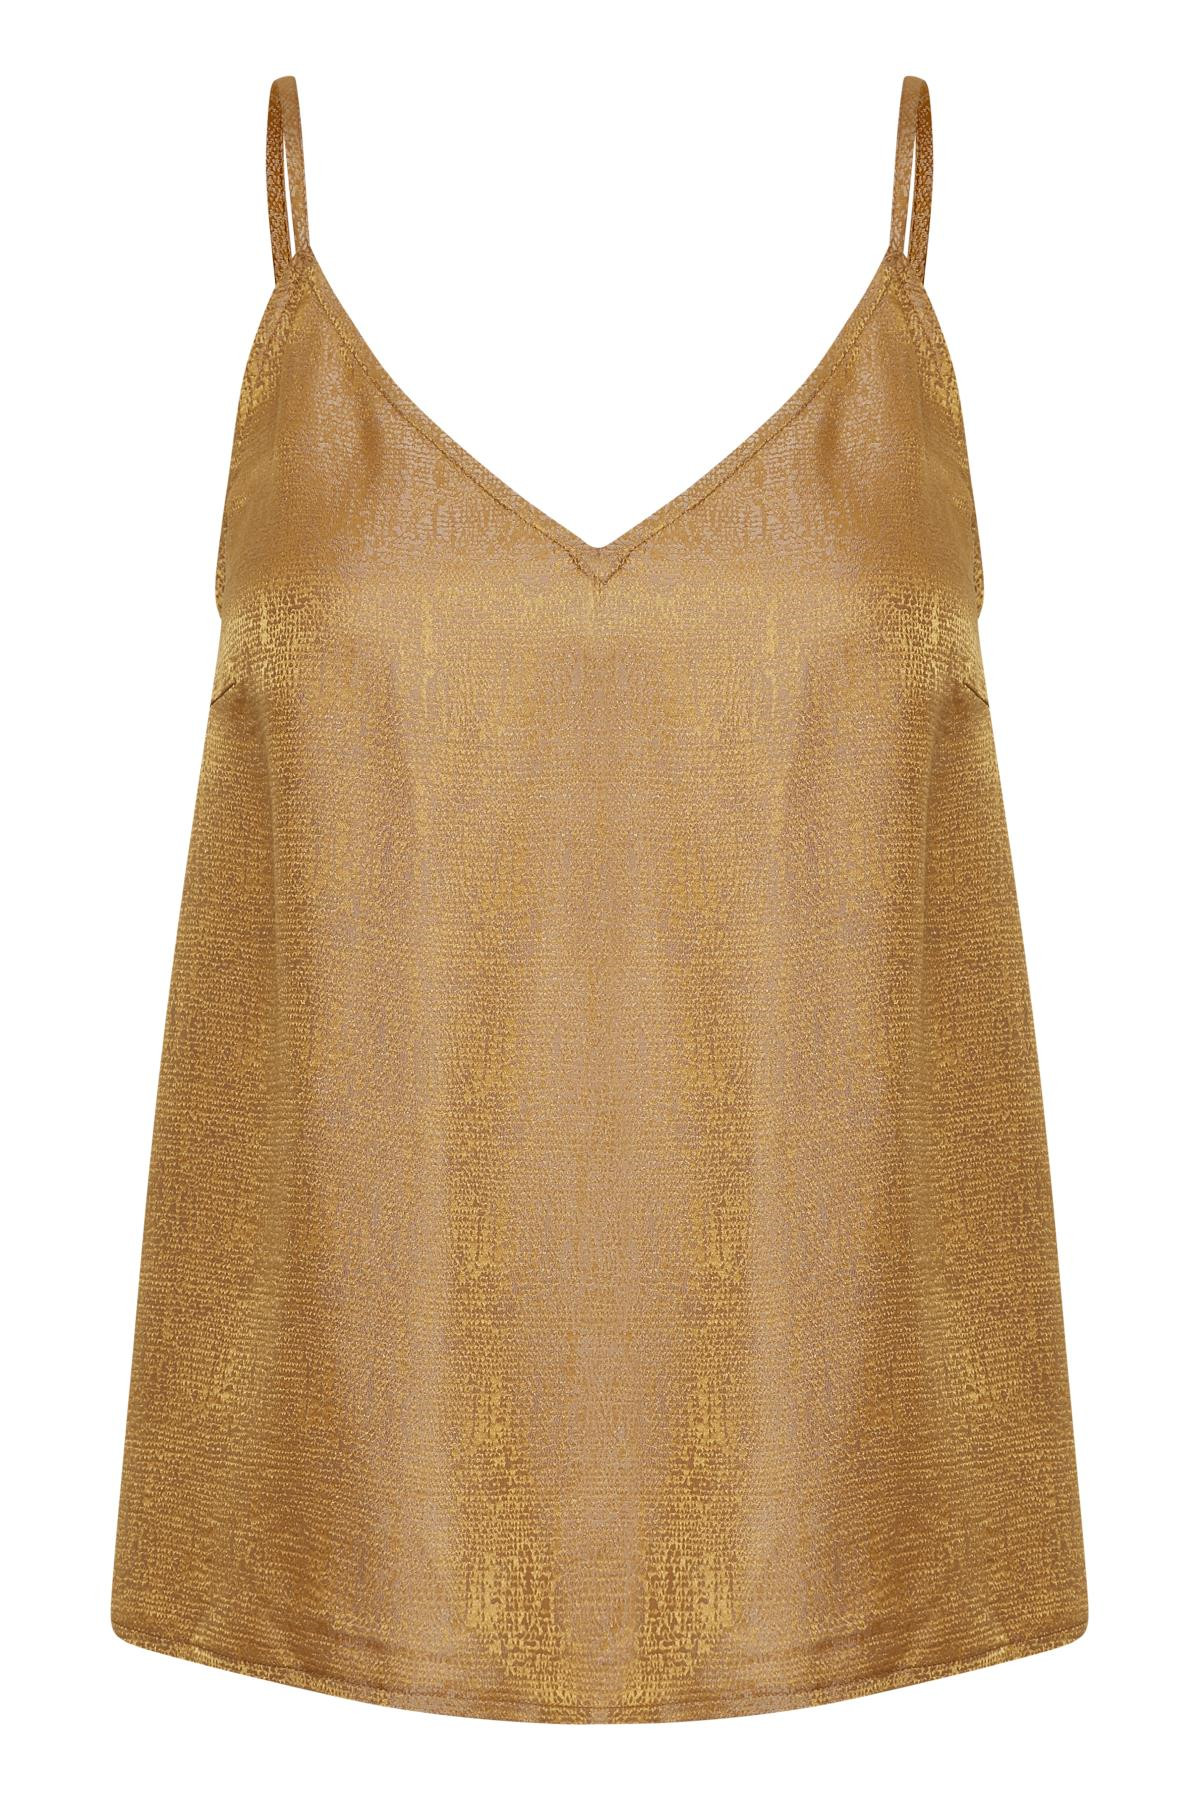 Image of   GESTUZ CAMMAGZ SINGLET (Narcissus Yellow 90576, 38)